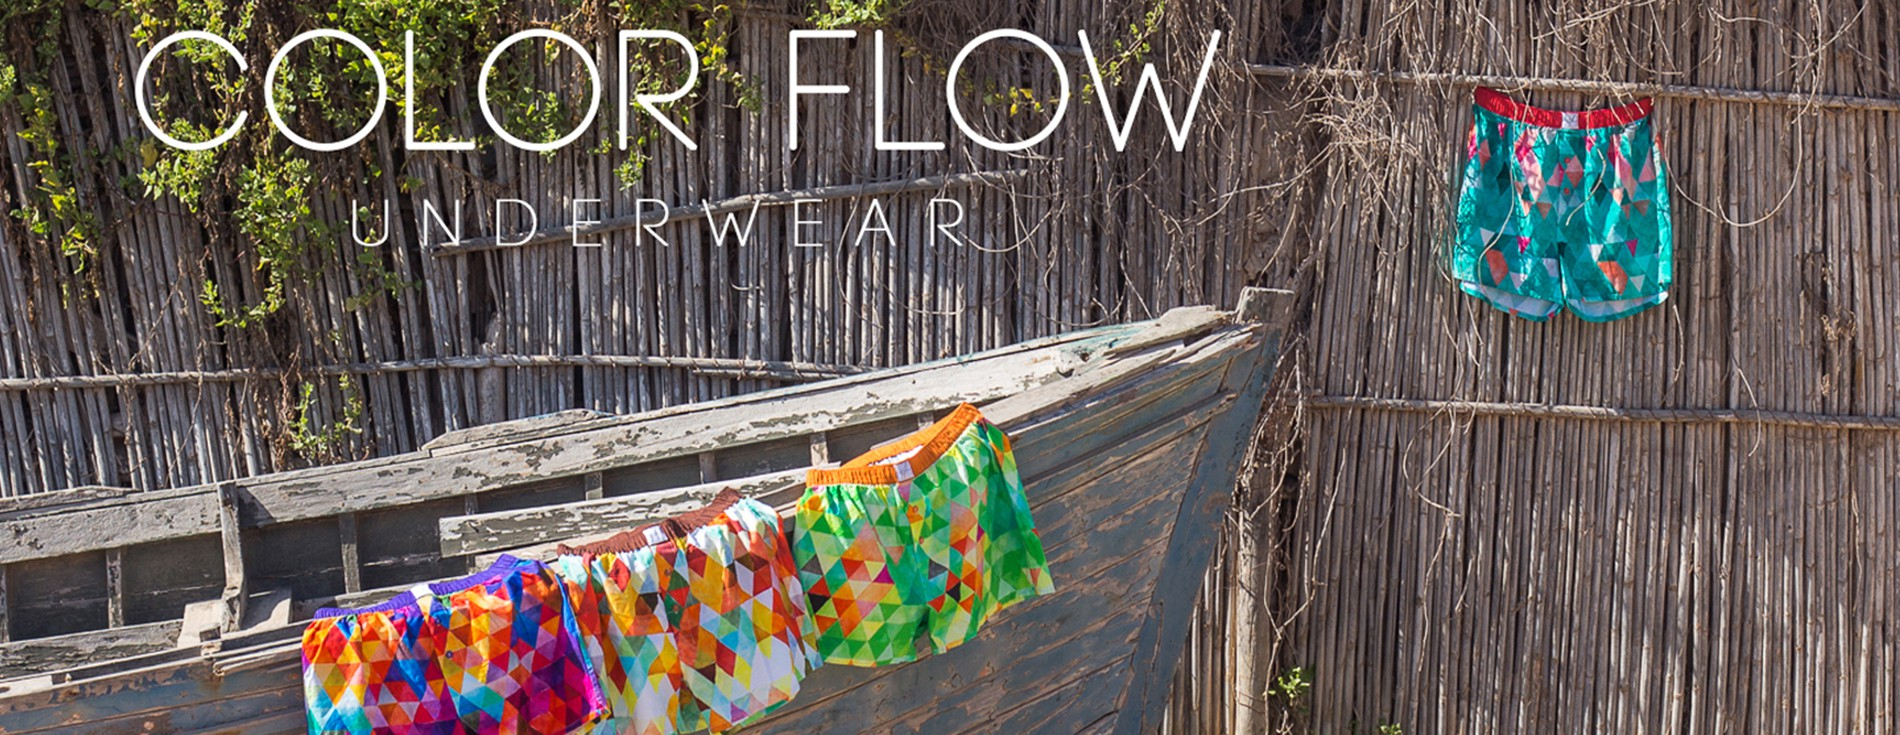 Choose color & feel the flow